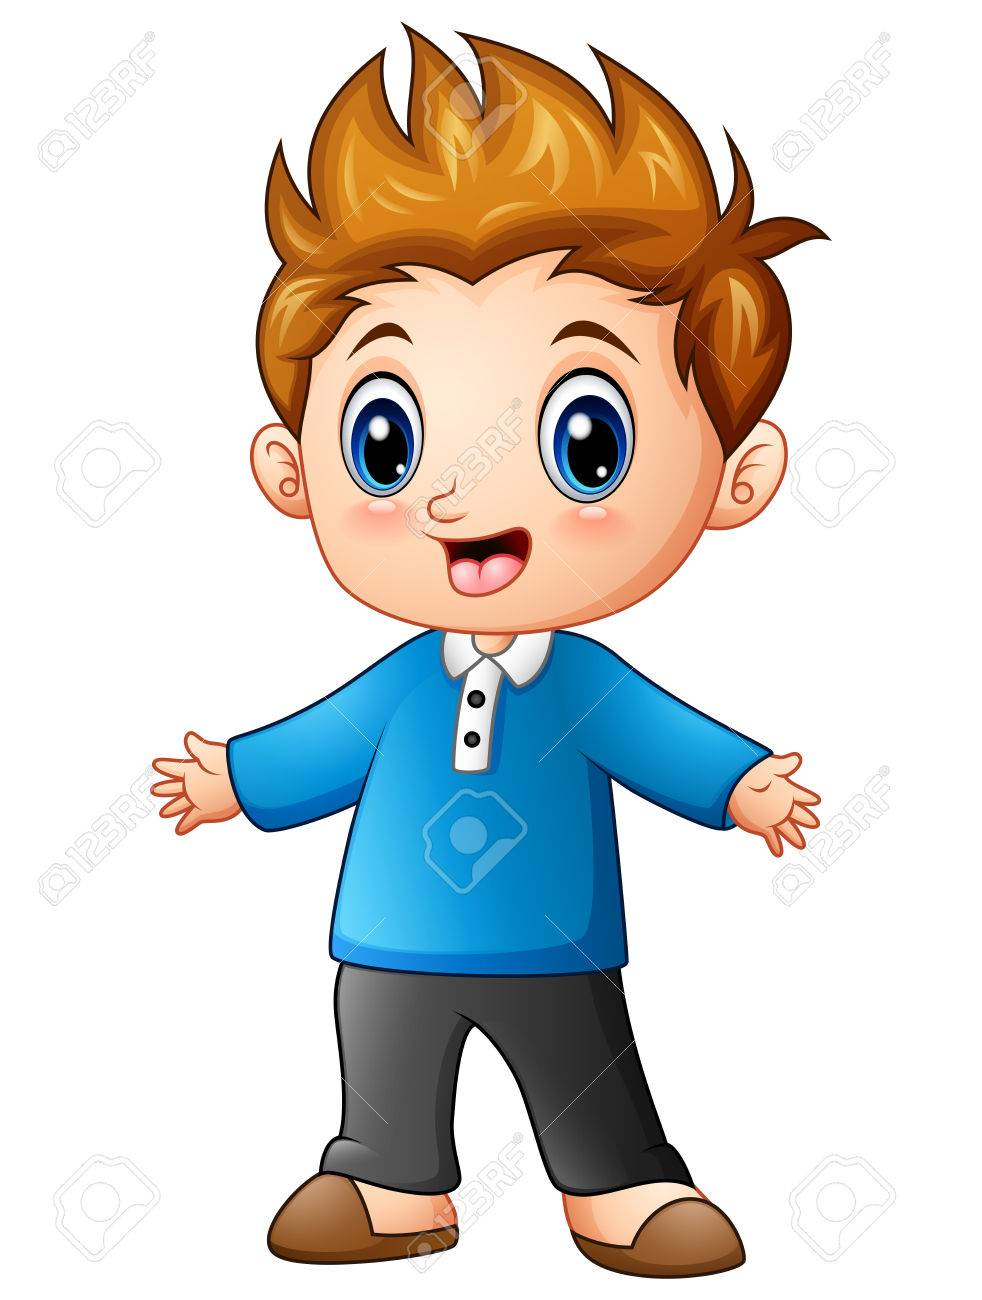 Cute Little Boy Cartoon Royalty Free Cliparts Vectors And Stock